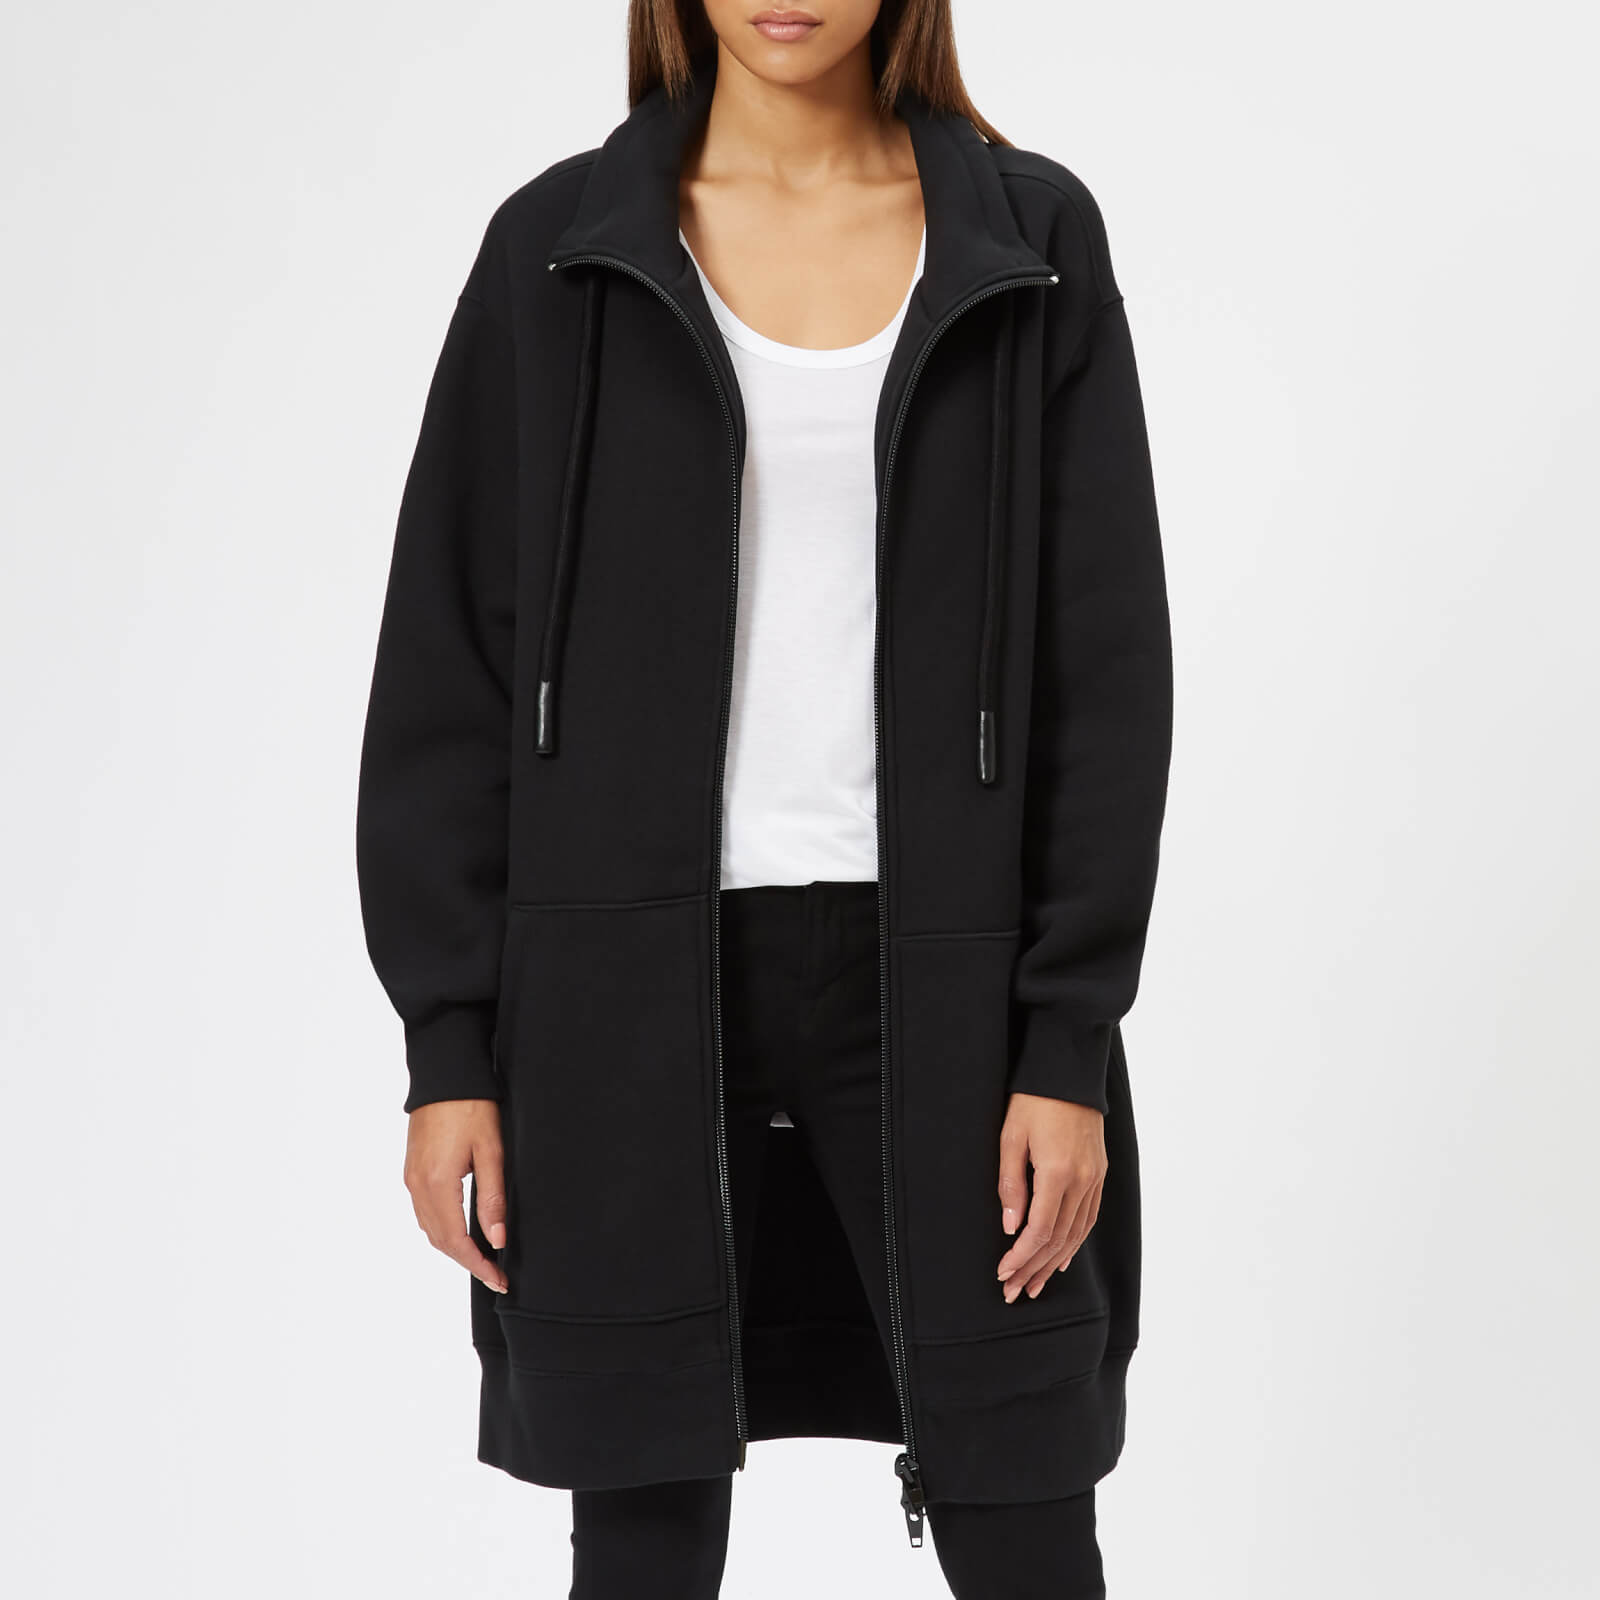 34179c6f55dc T by Alexander Wang Women s Heavy French Terry Oversized Full-Zip Sweatshirt  - Black - Free UK Delivery over £50